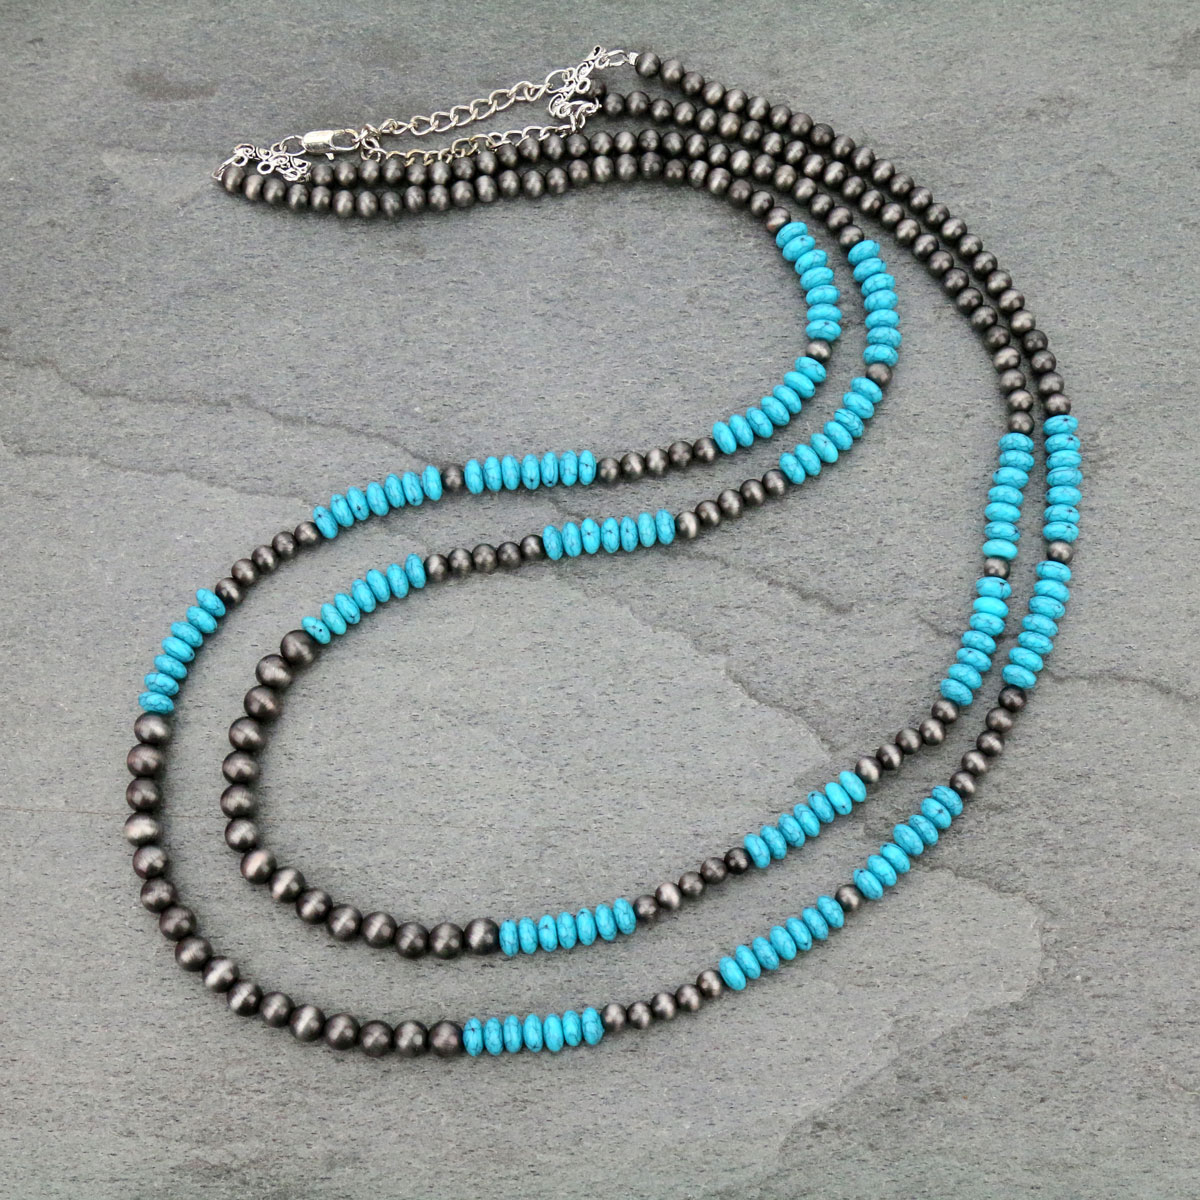 Beaded Necklace-733485